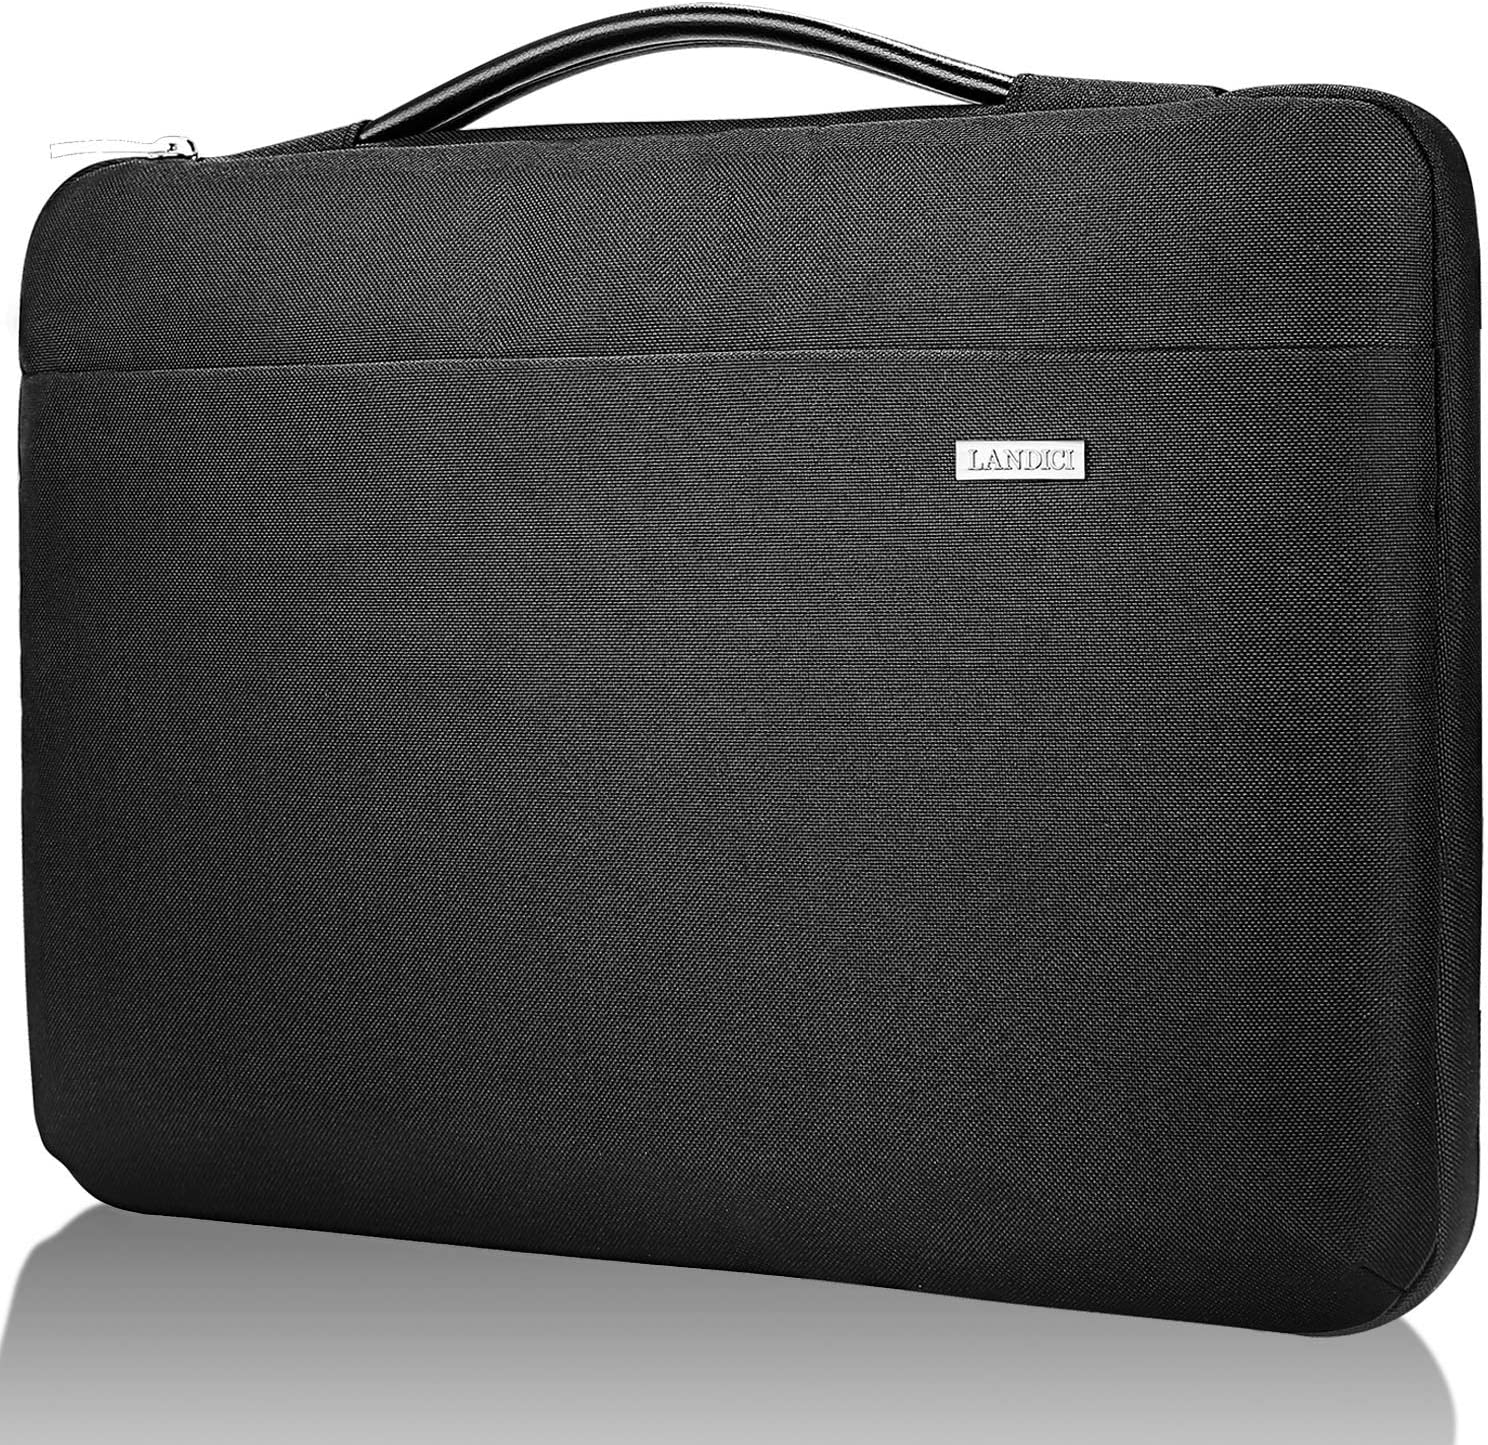 """Landici Laptop Case Sleeve 11.6-12 Inch with Handle,360°Protective Computer Bag Compatible with MacBook Air 11/Surface Pro 7 6/Chromebook/Ipad Pro 12.9,Waterproof 12.5"""" Acer Hp Tablet Cover-Black"""